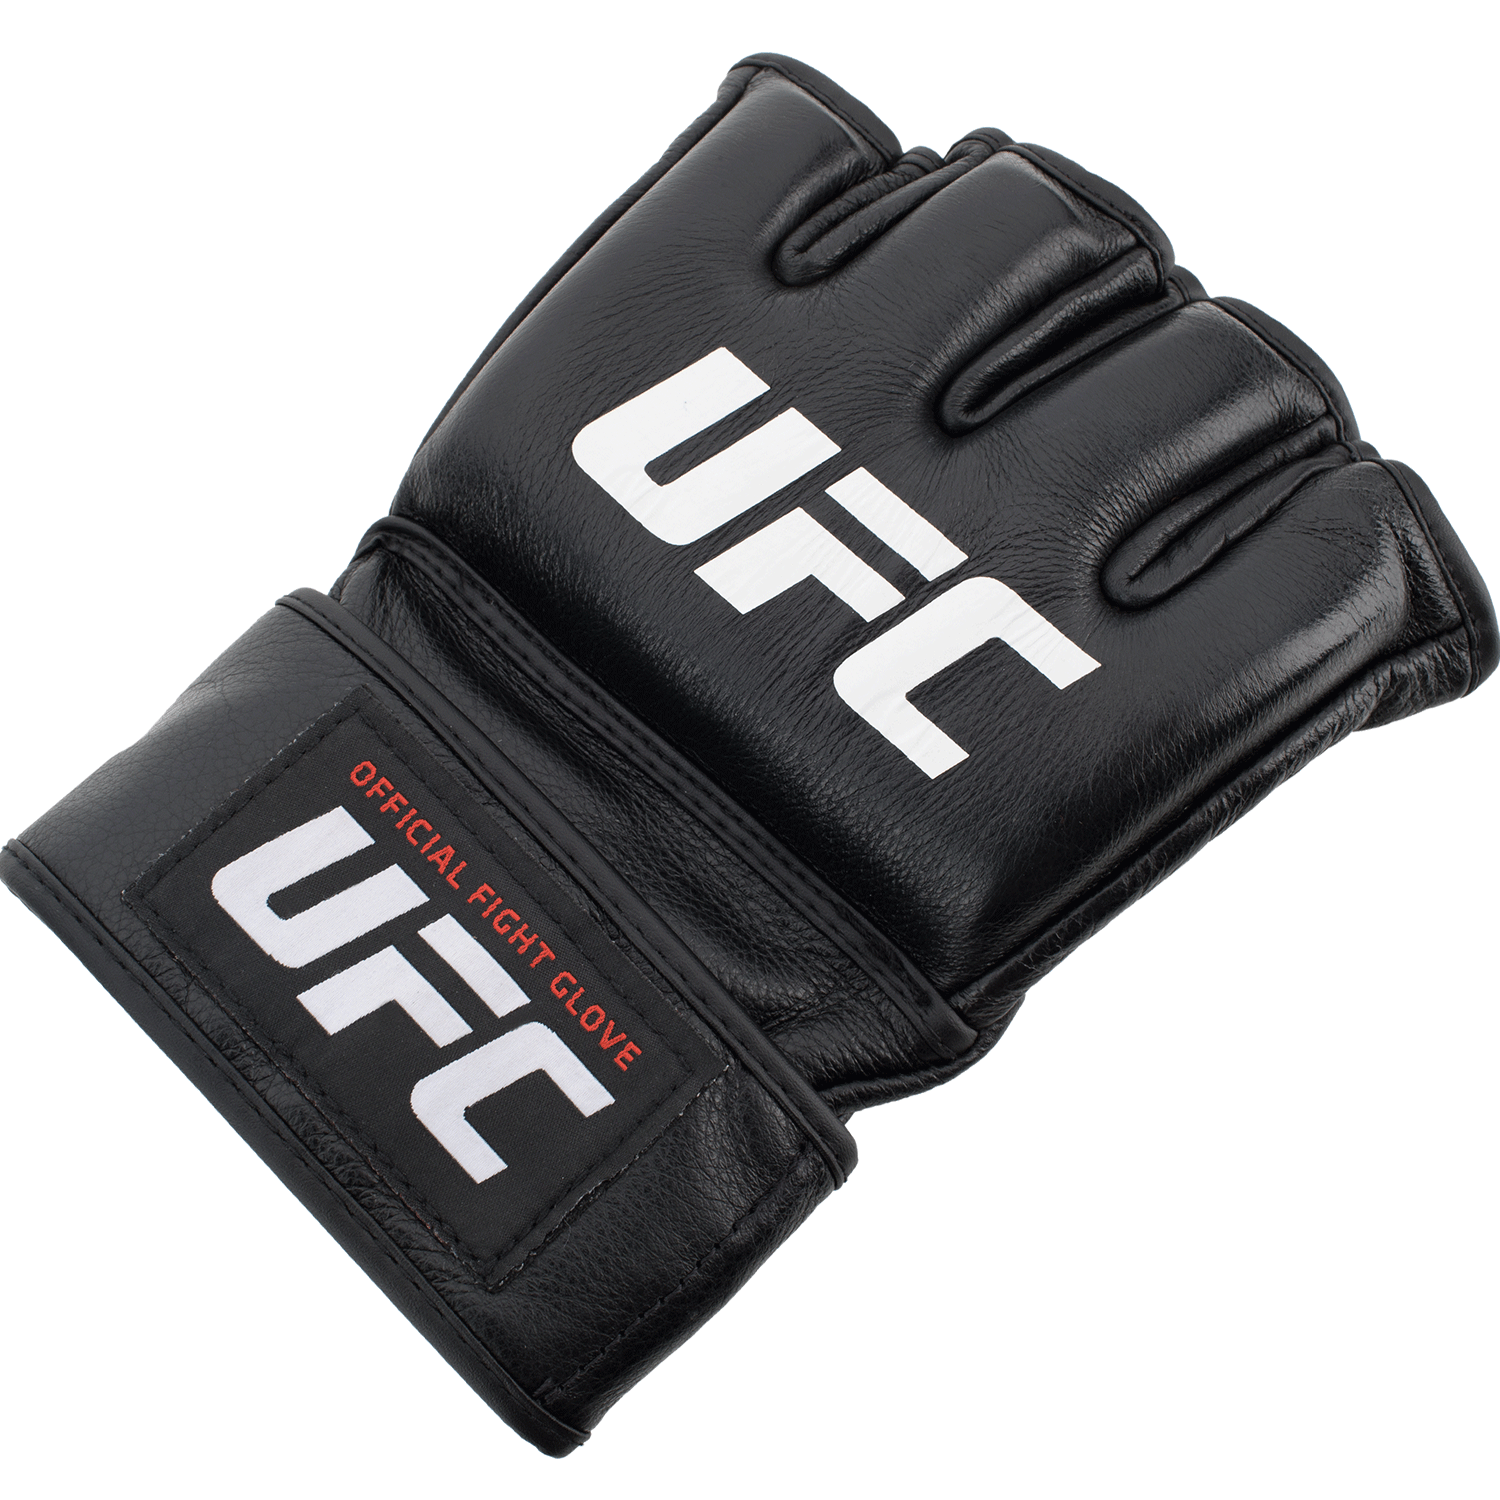 Official-Pro-Fight-Glove_bk-3.png